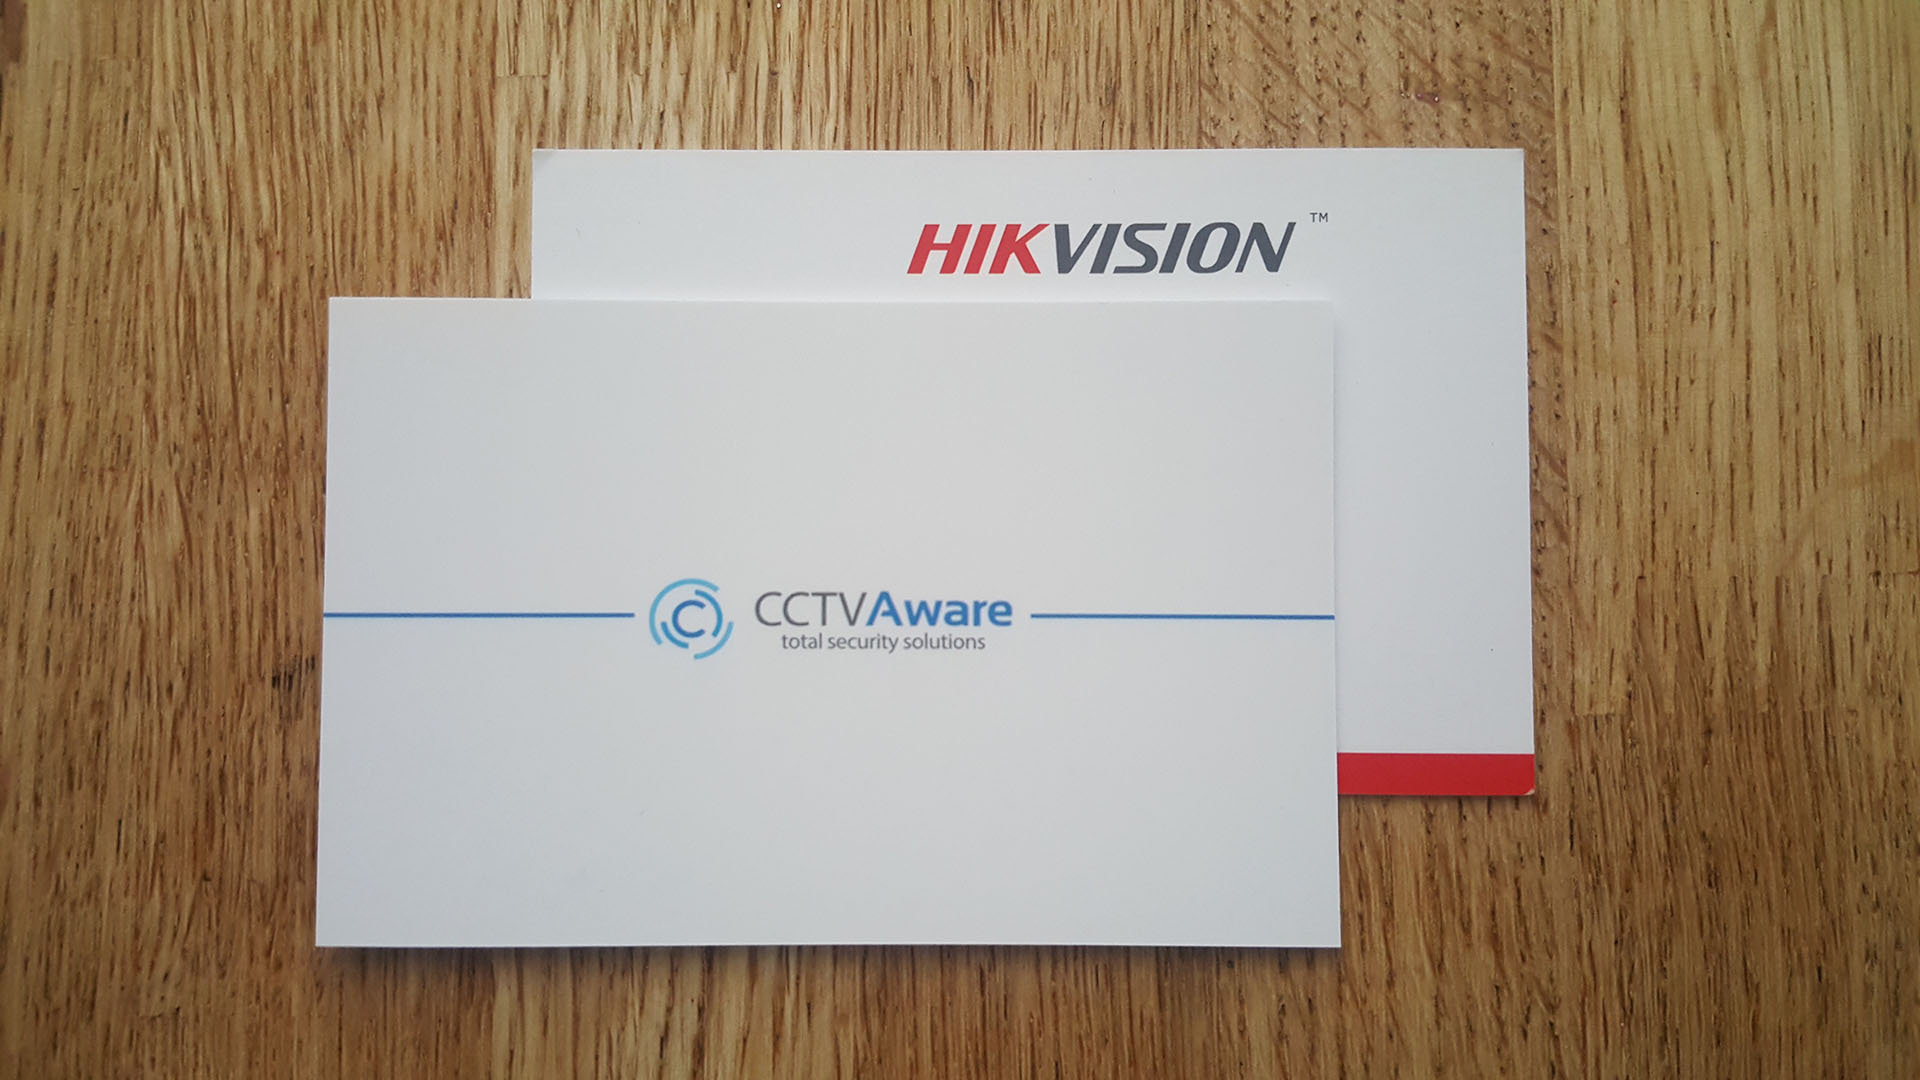 Why we chose Hikvision